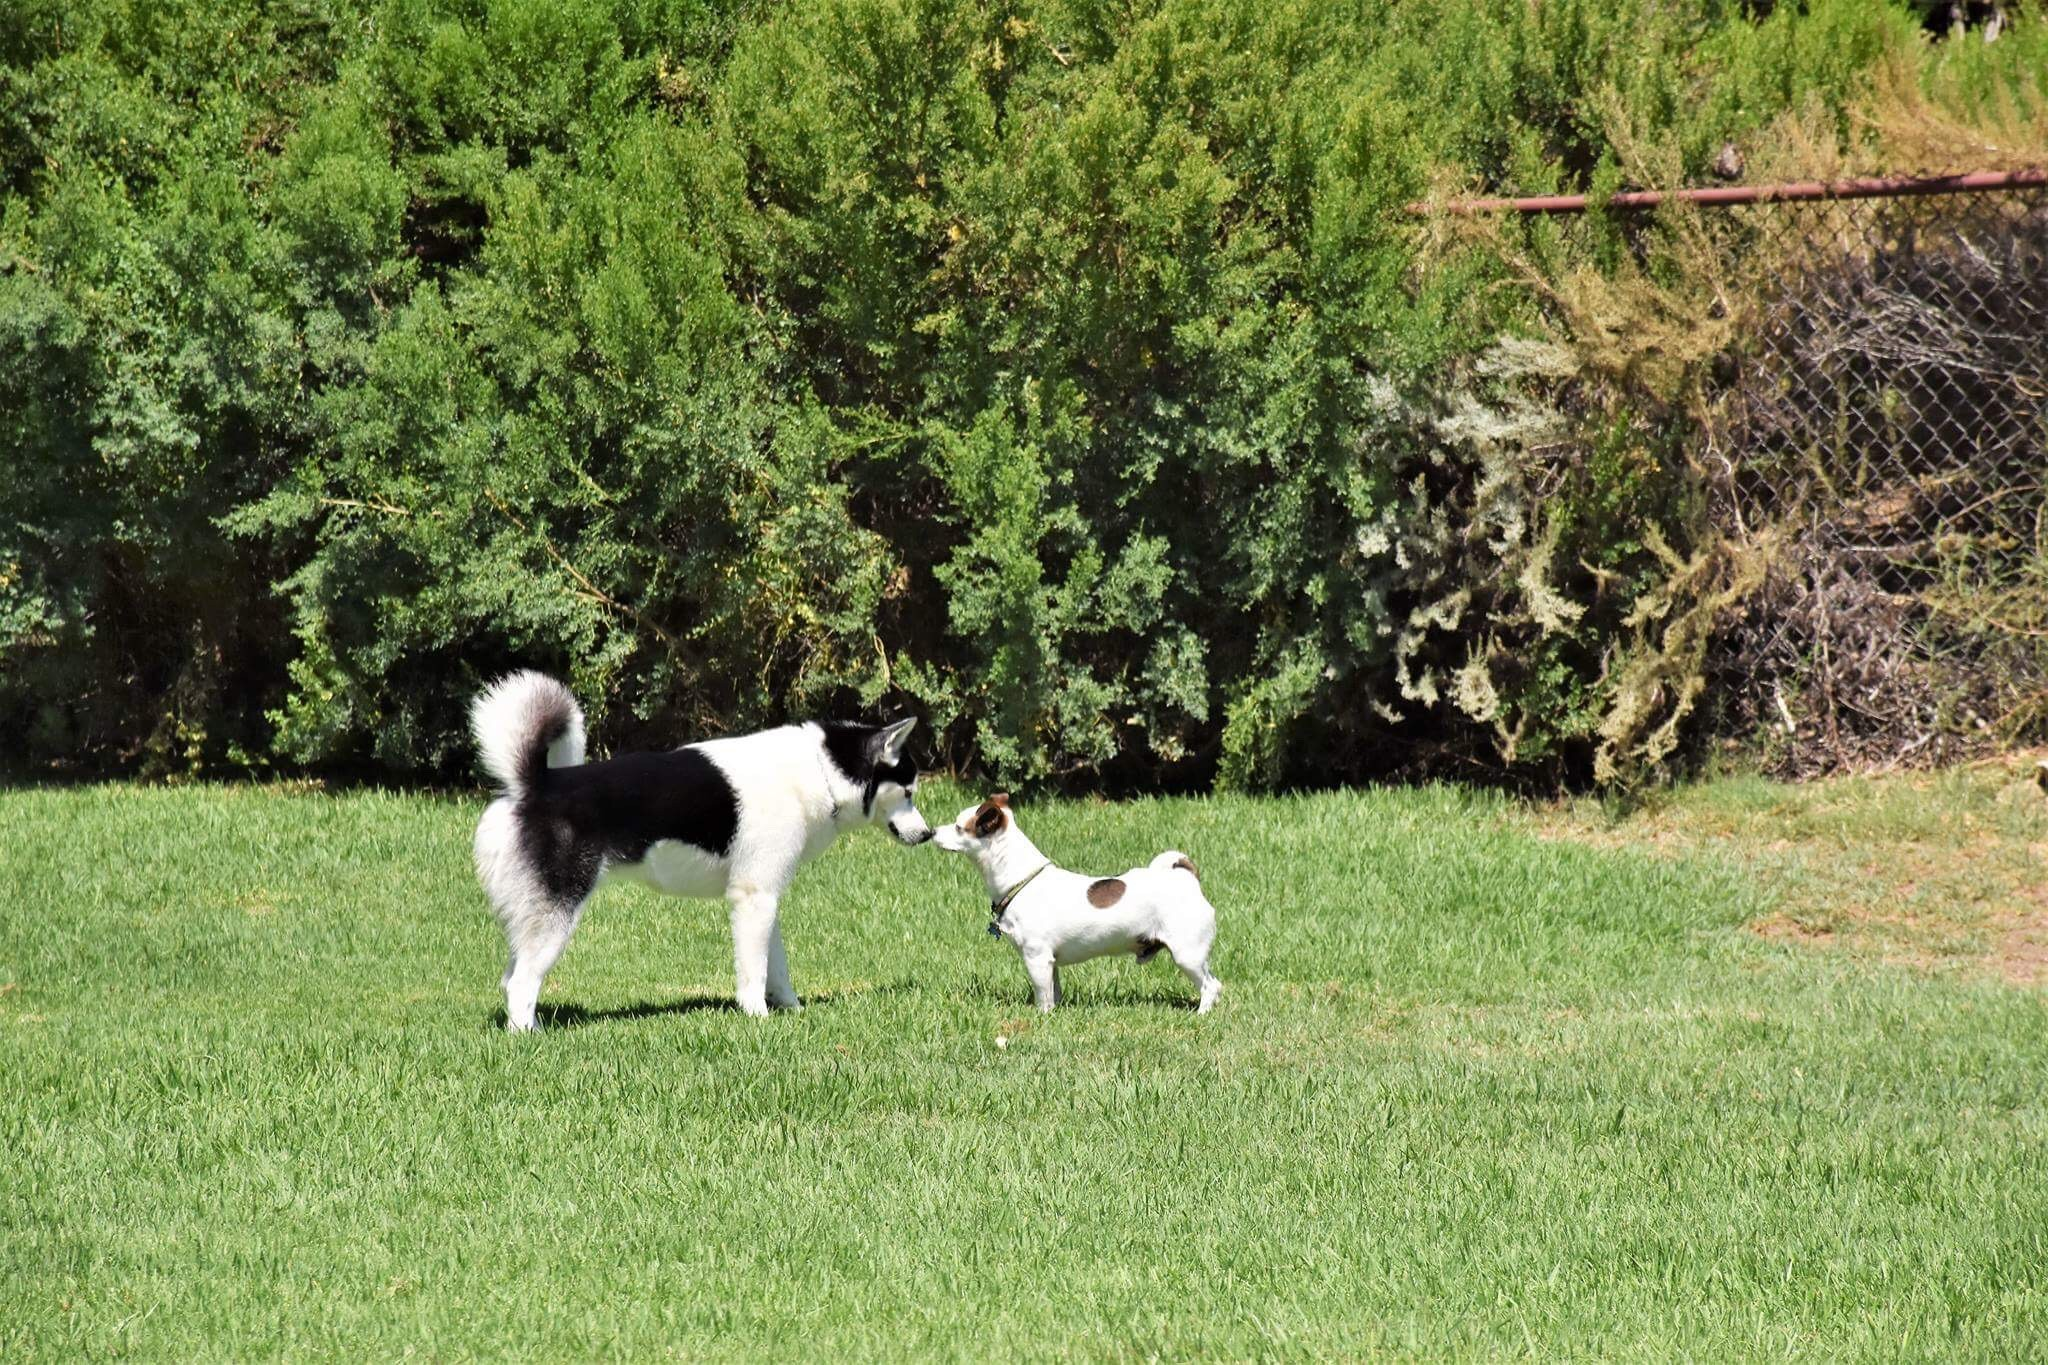 Husky puppies for sale yucca valley - Husky Puppies For Sale Yucca Valley 49